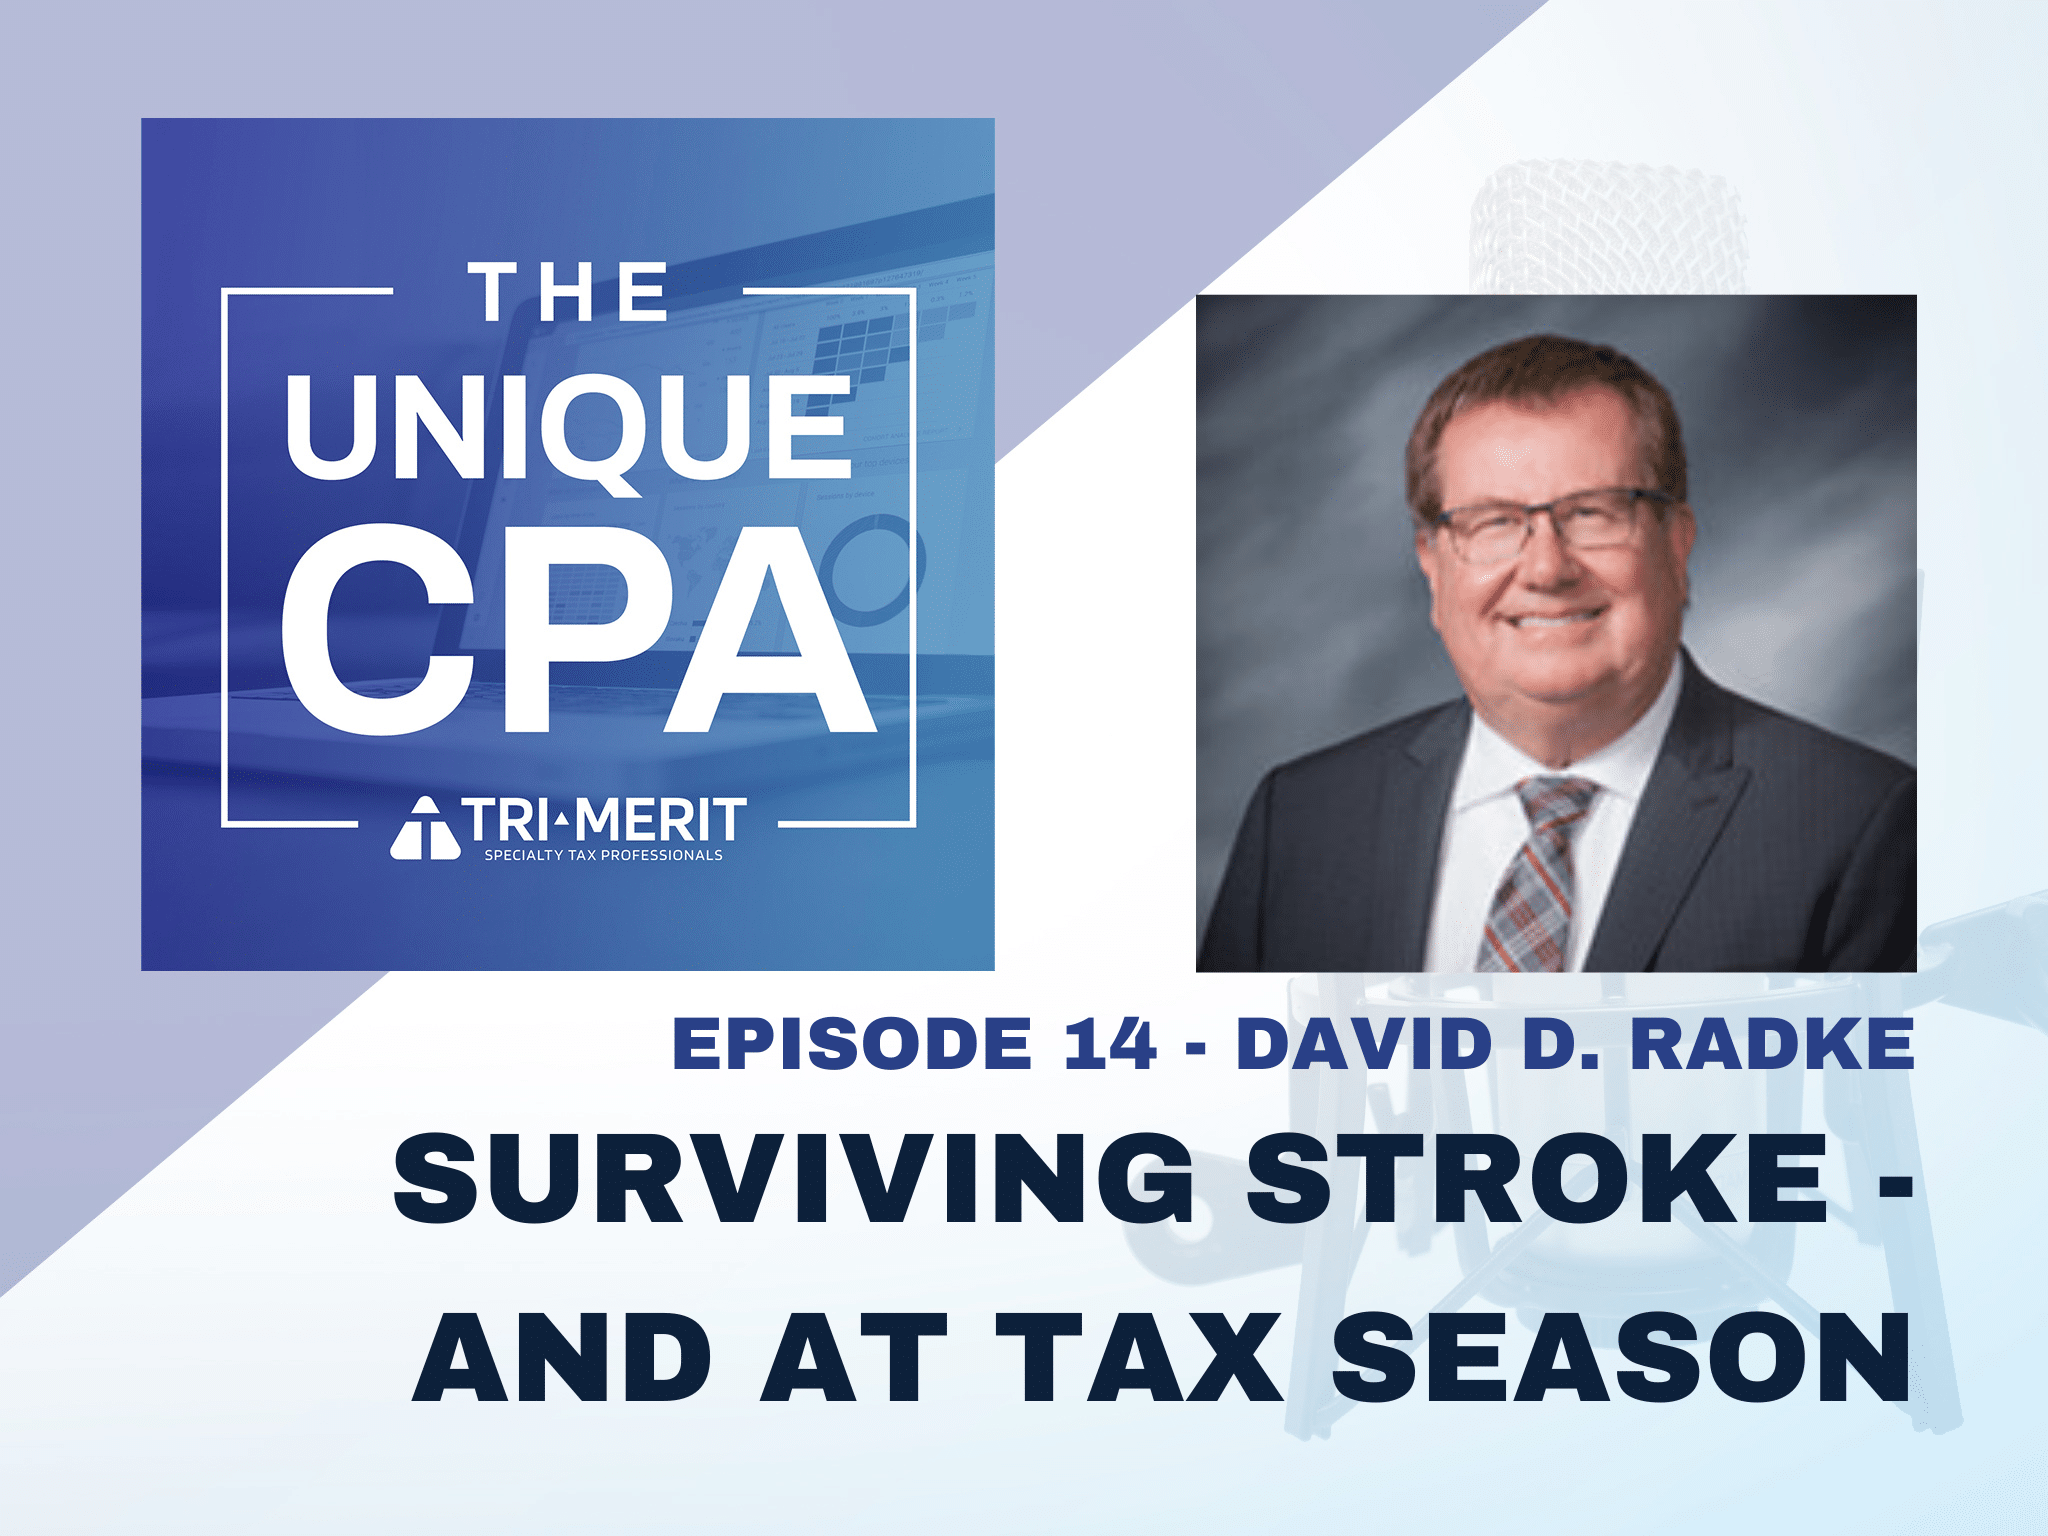 The Unique CPA Feature Image Ep 14 1 - Surviving Stroke - and at Tax Season - Tri-Merit